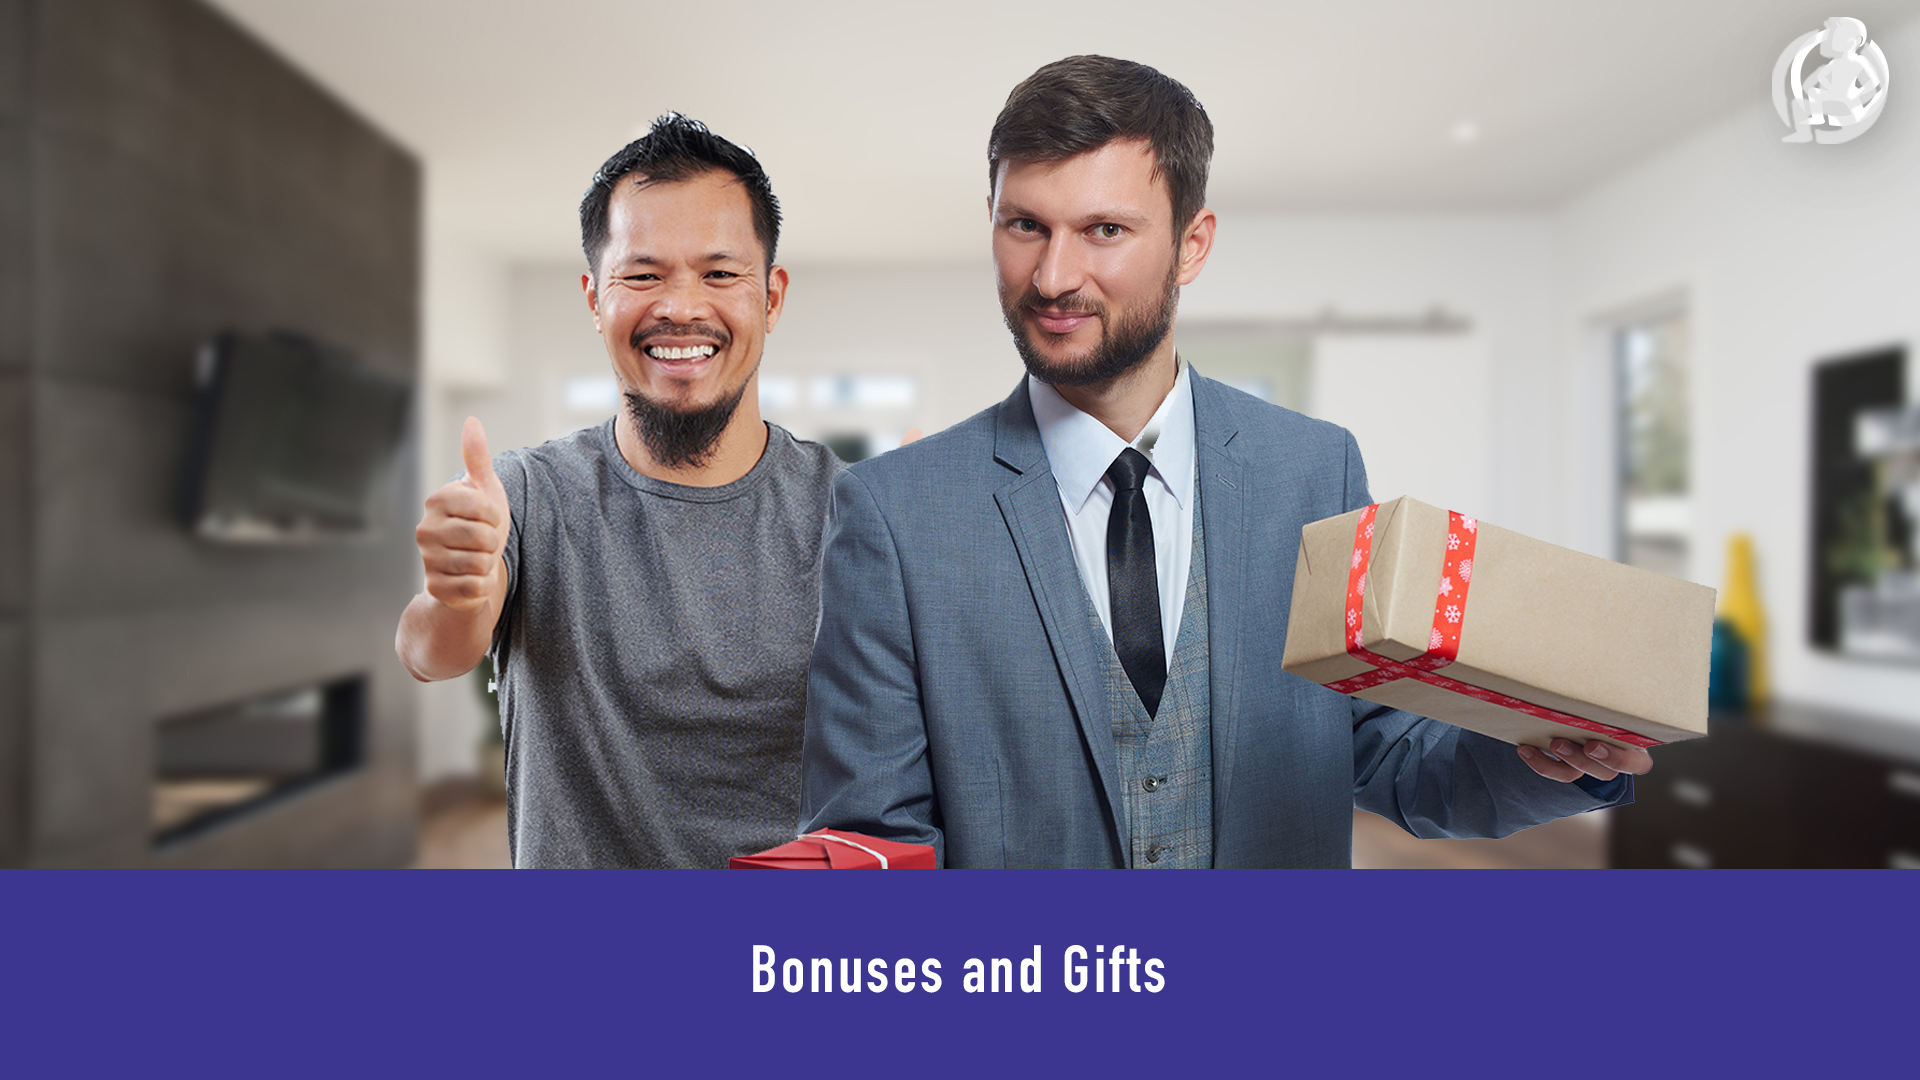 Bonuses and Gifted